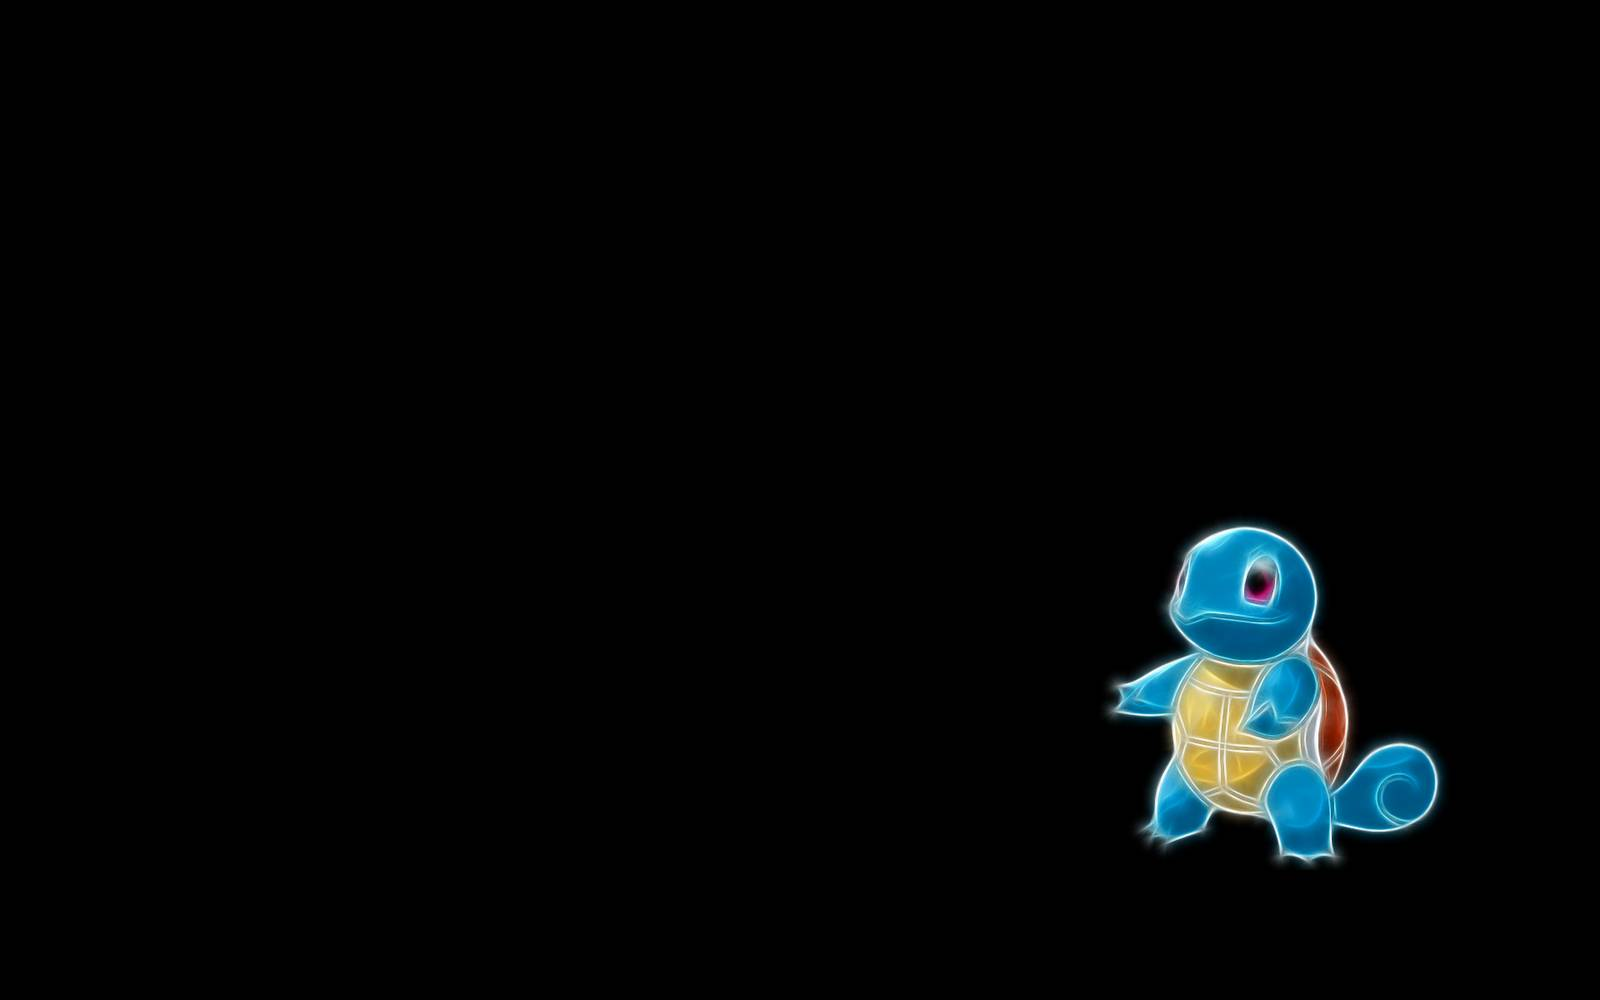 Squirtle Wallpaper Awesome Squirtle wallpaper 1600x1000